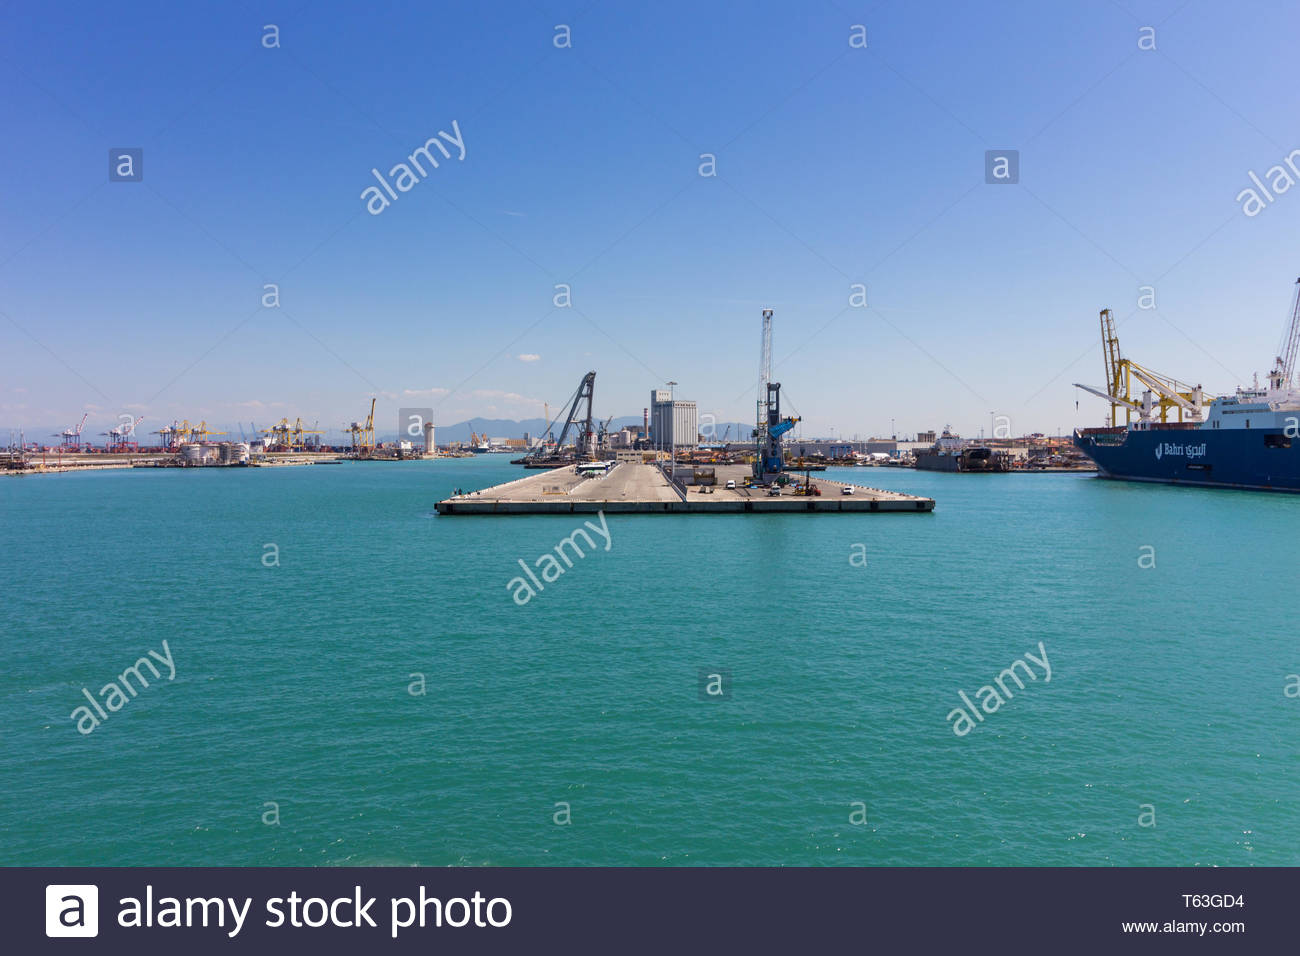 Pisa, Italy - May, 17, 2017: Looking towards Marina di Pisa from a cruise ship deck. - Stock Image